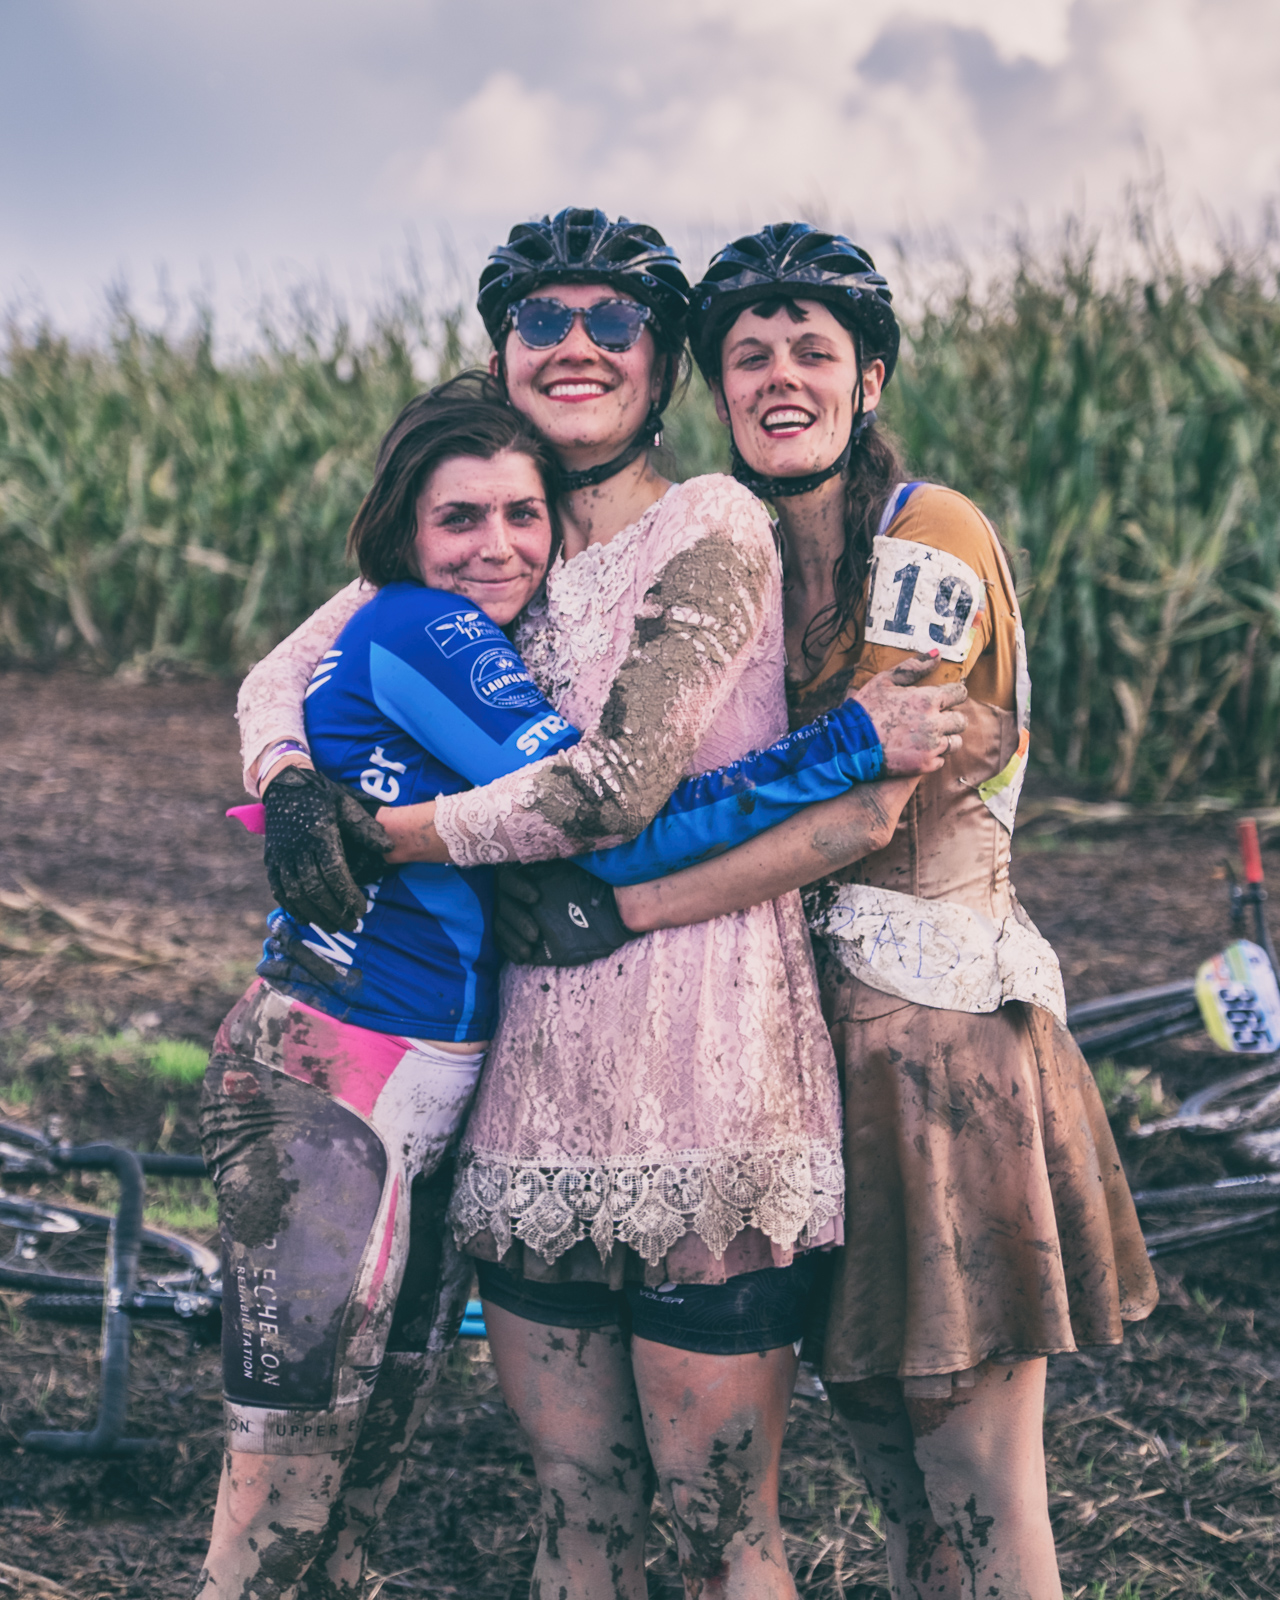 December 4. I've already written about SSCXWCPDX16, but back to portraits: one of the reasons I love them so much is their ability to convey stories and emotion. This one serves as an apt representation of the community of friends I've been able to build through this sport since moving to Vancouver a few years ago. To each of you:thank you for continuing to be there to support me and what I do, in all the various ways that you've shown it.